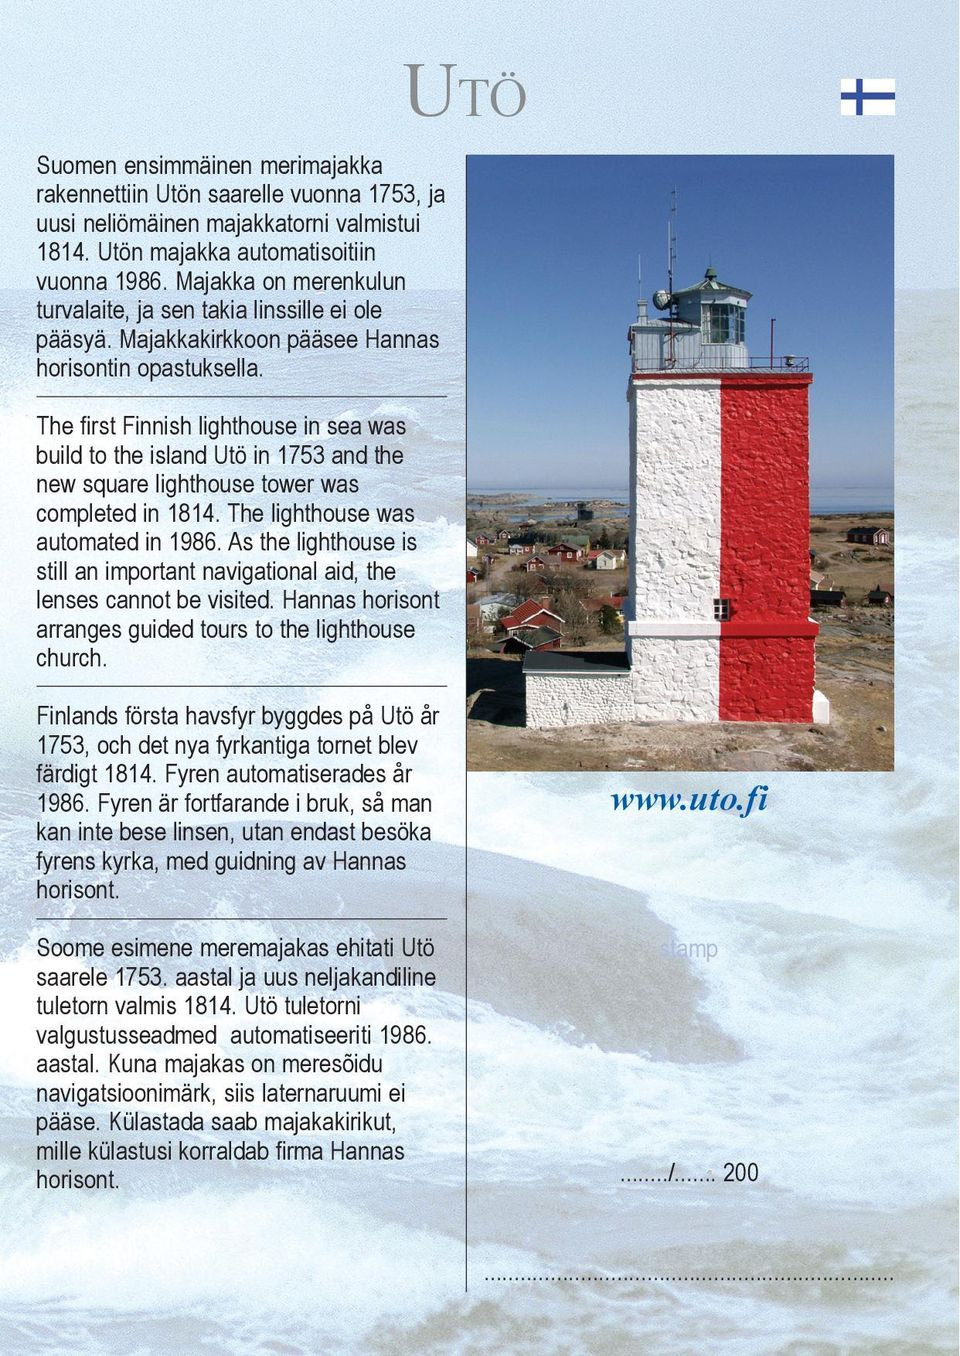 The first Finnish lighthouse in sea was build to the island Utö in 1753 and the new square lighthouse tower was completed in 1814. The lighthouse was automated in 1986.